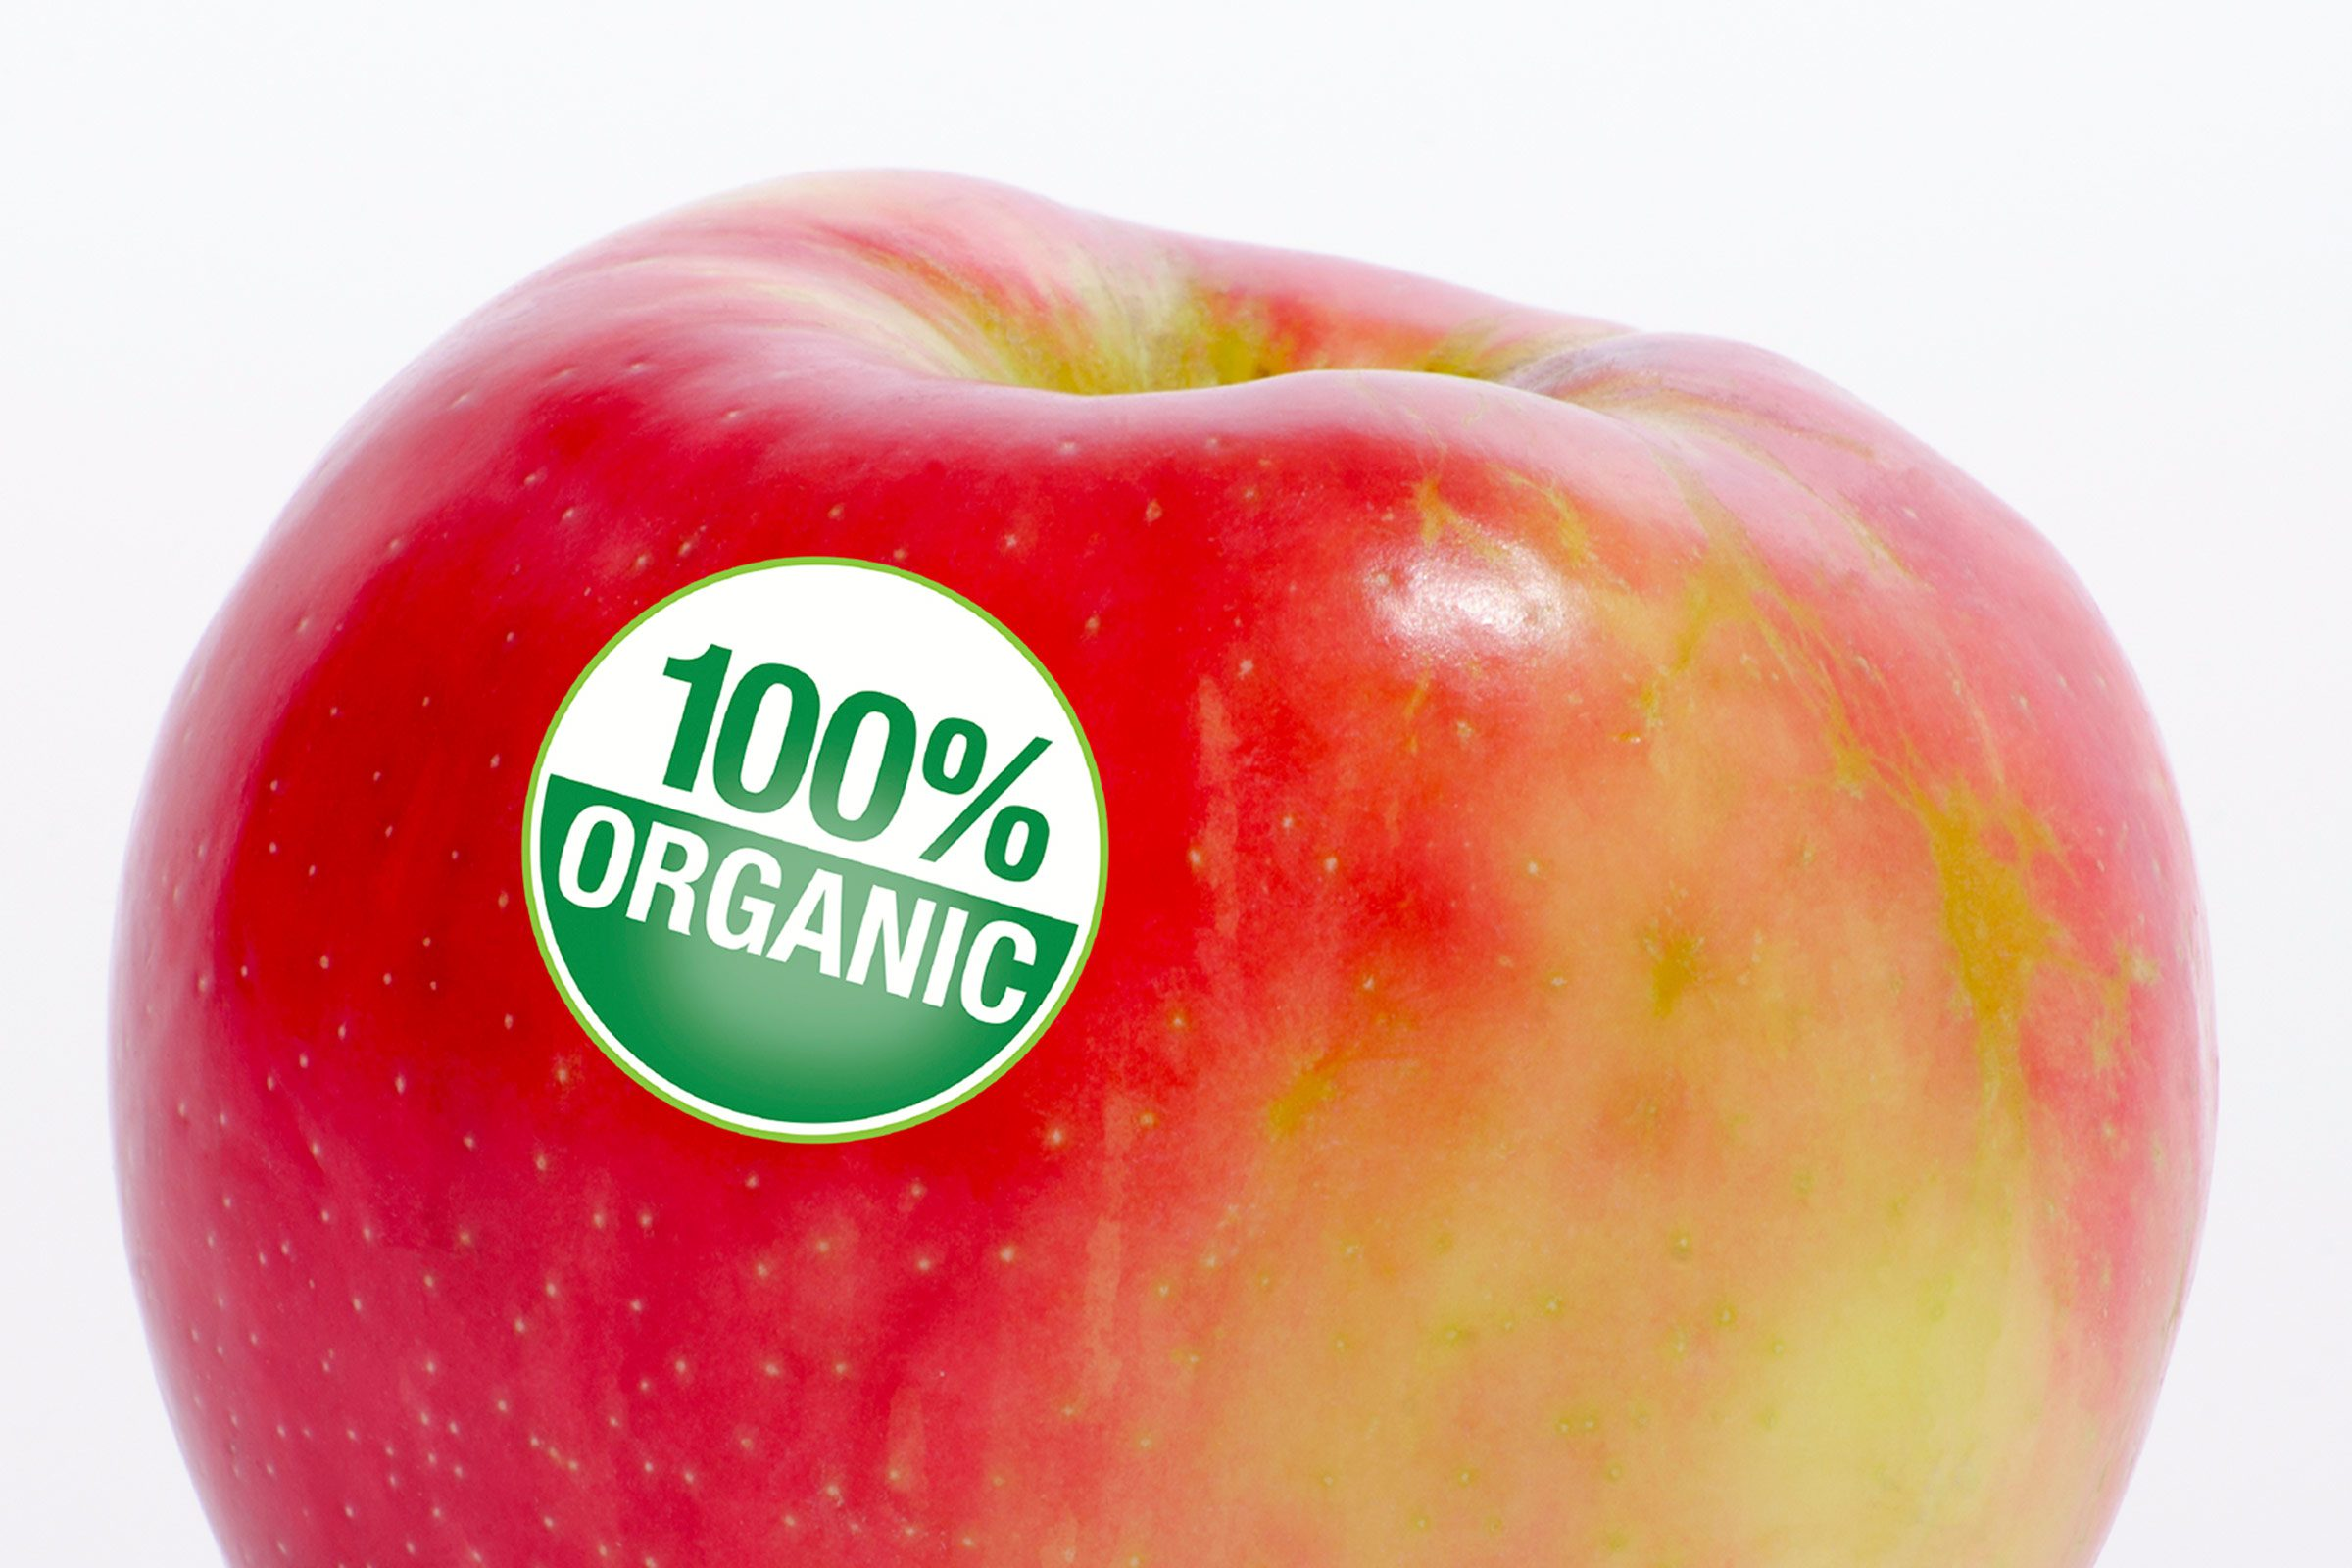 """Organic"" doesn't mean 100% organic."